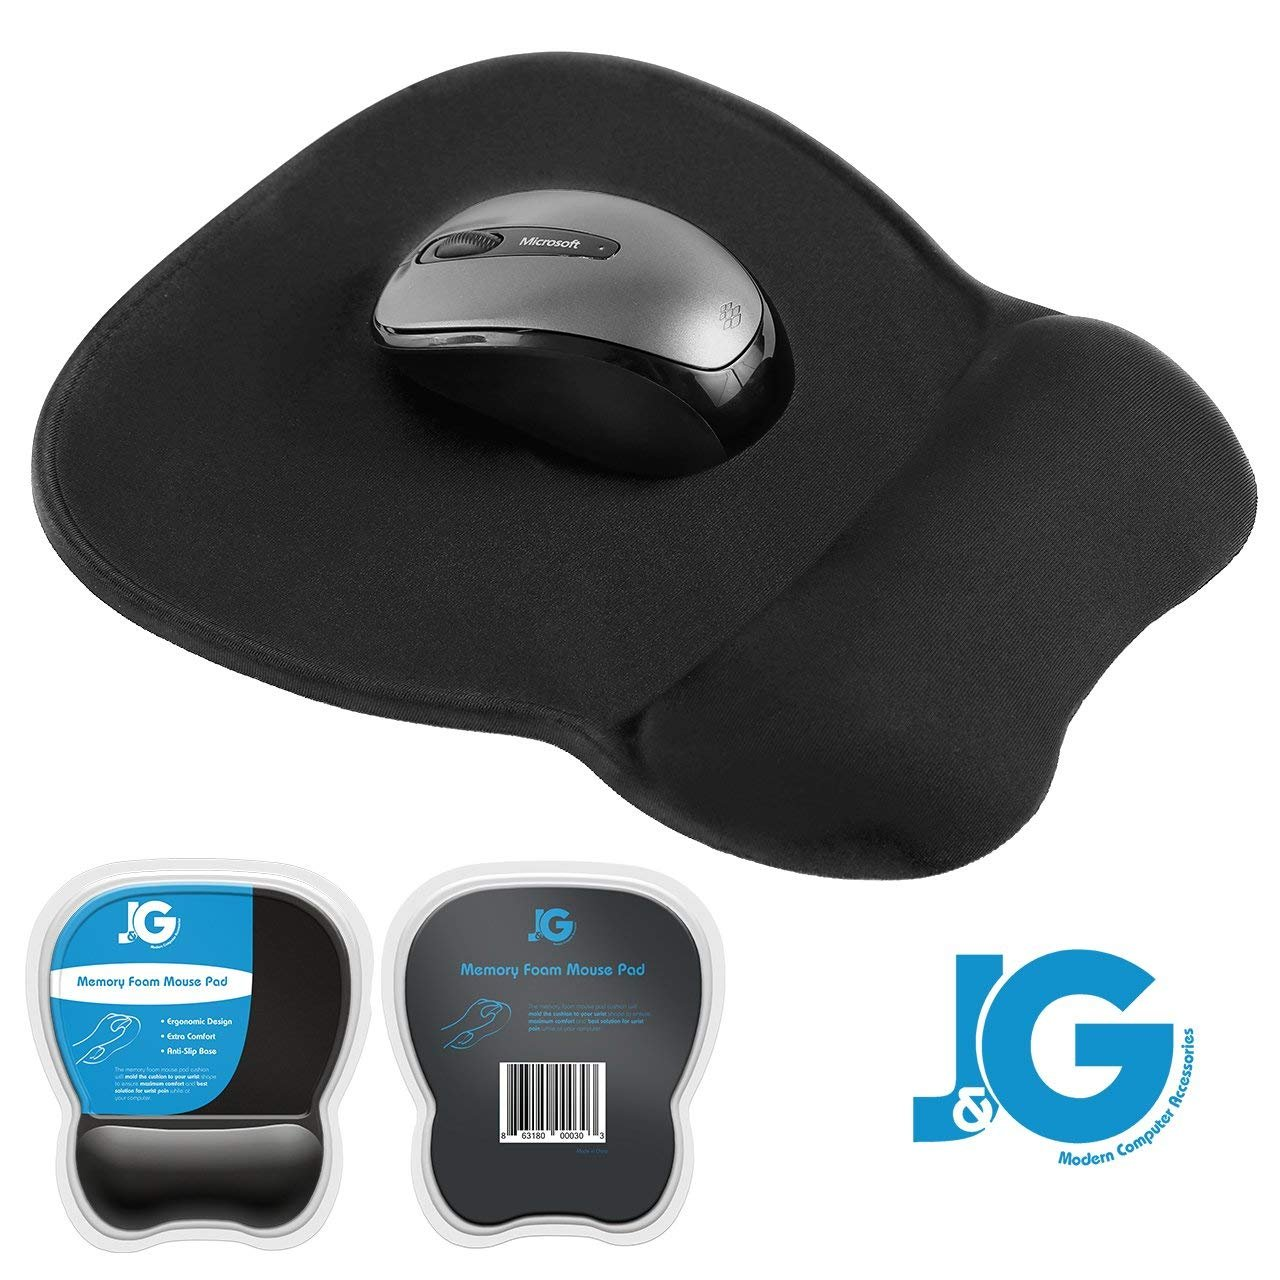 J&G MODERN COMPUTER ACCESSORIES Mouse Pad with Wrist Support, Rest | Ergonomic | Black | Eliminates All Pains, Carpal Tunnel or Any Other Wrist Discomfort! Non-Slip Base & Stitched Edges. by J&G MODERN COMPUTER ACCESSORIES